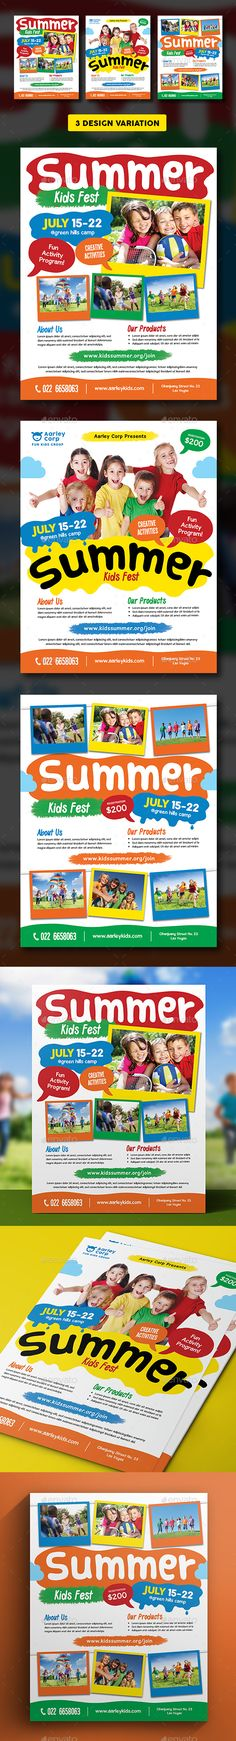 Best Kids Summer Camp Flyer Print Templates  HttpWww